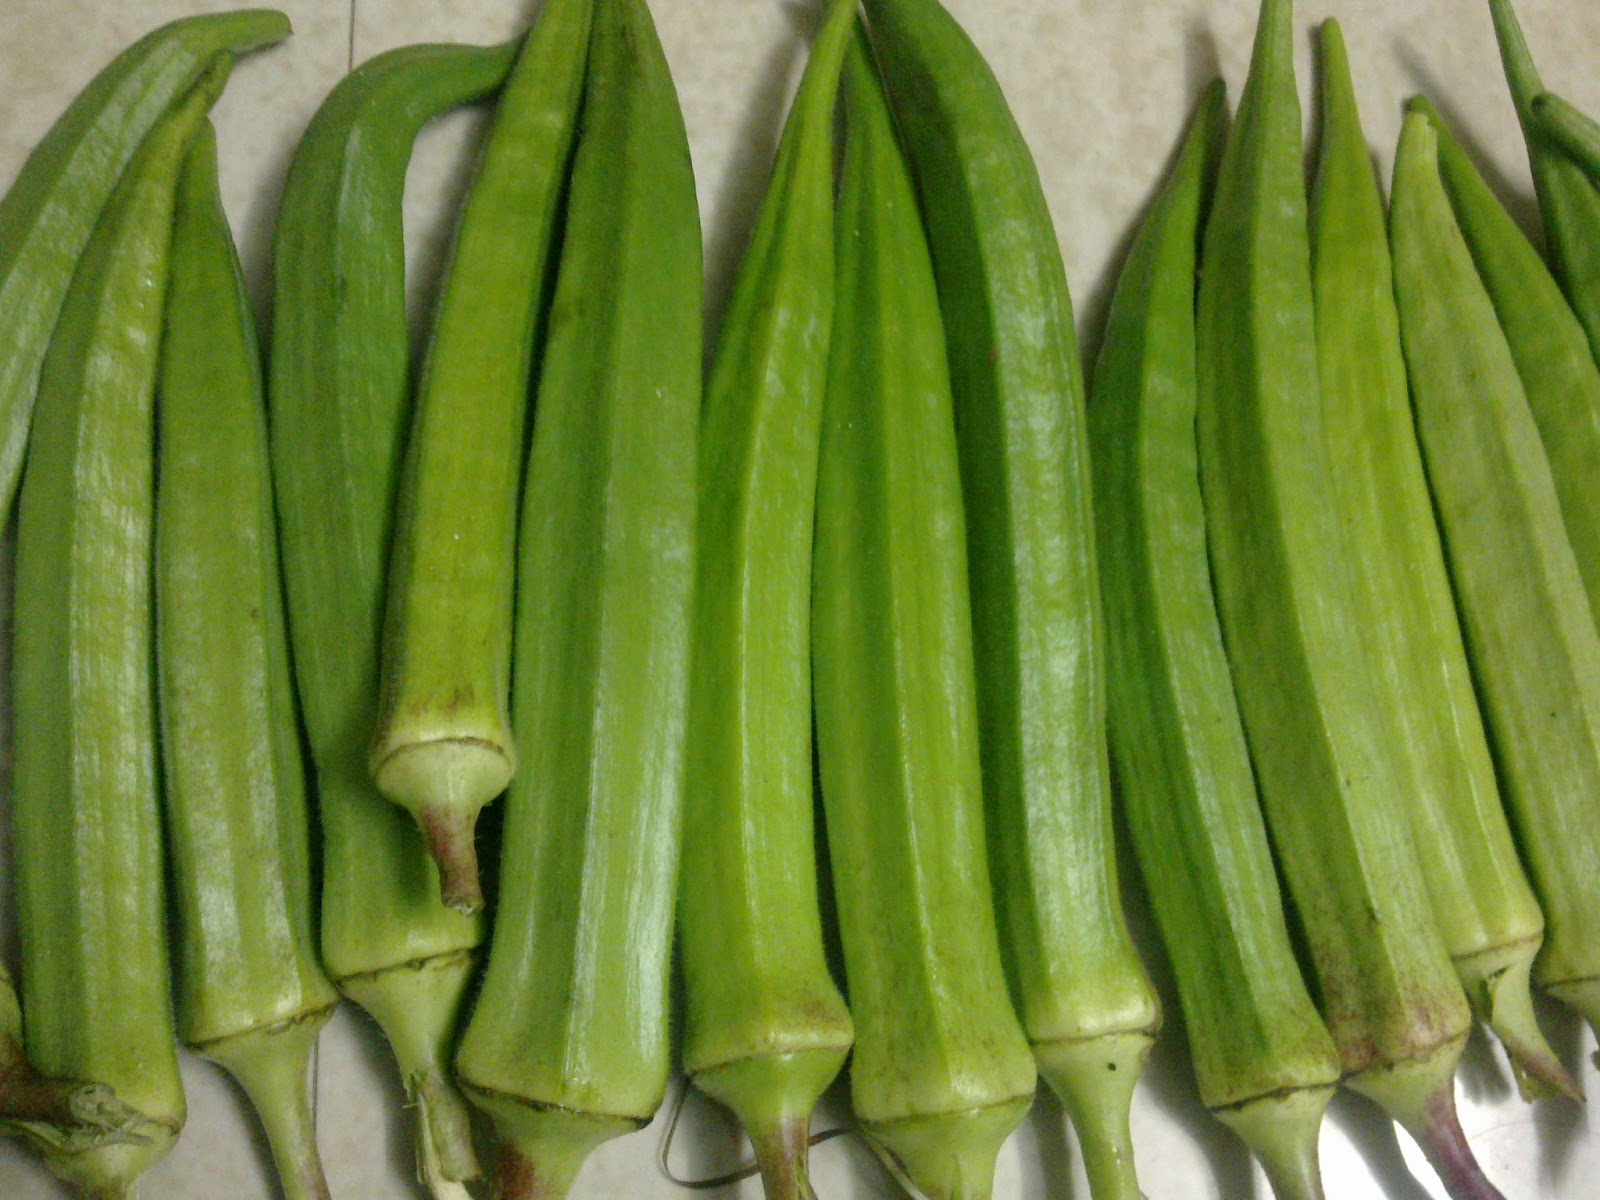 ladies finger Find here details of companies selling lady finger, for your purchase requirements get latest info on lady finger, fresh lady finger, okra, suppliers, manufacturers.